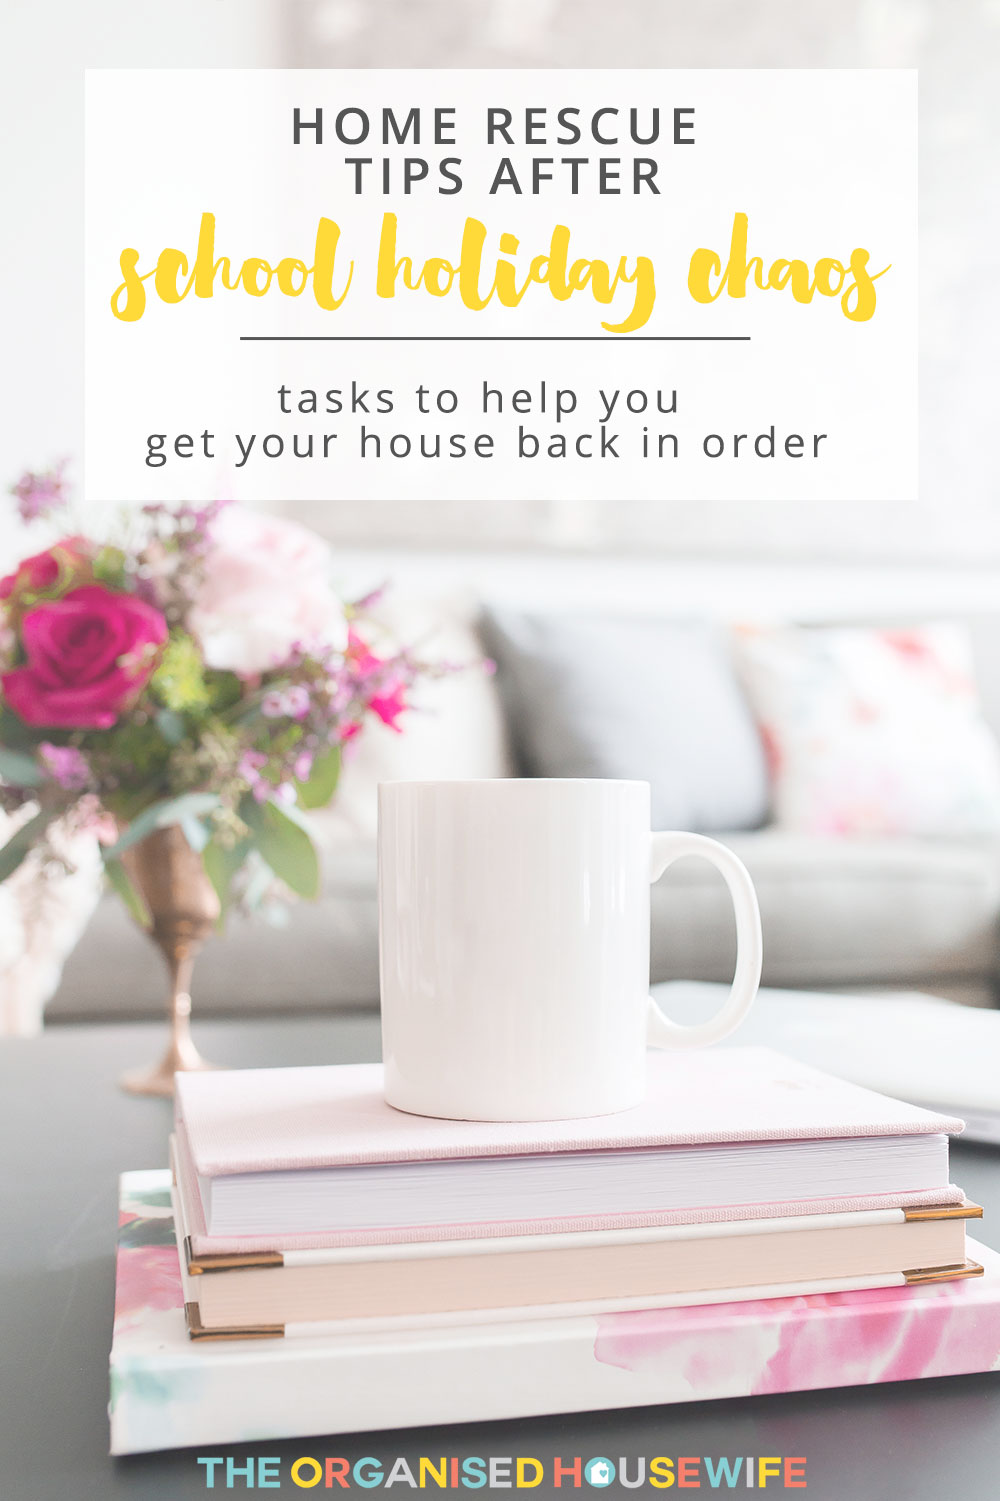 Trying to keep the house clean and tidy during school holiday can seem a little redundant, as soon as you tidy something up you turn your back and it's a mess again. Here are my tips to restoring your house after school holidays come to an end.